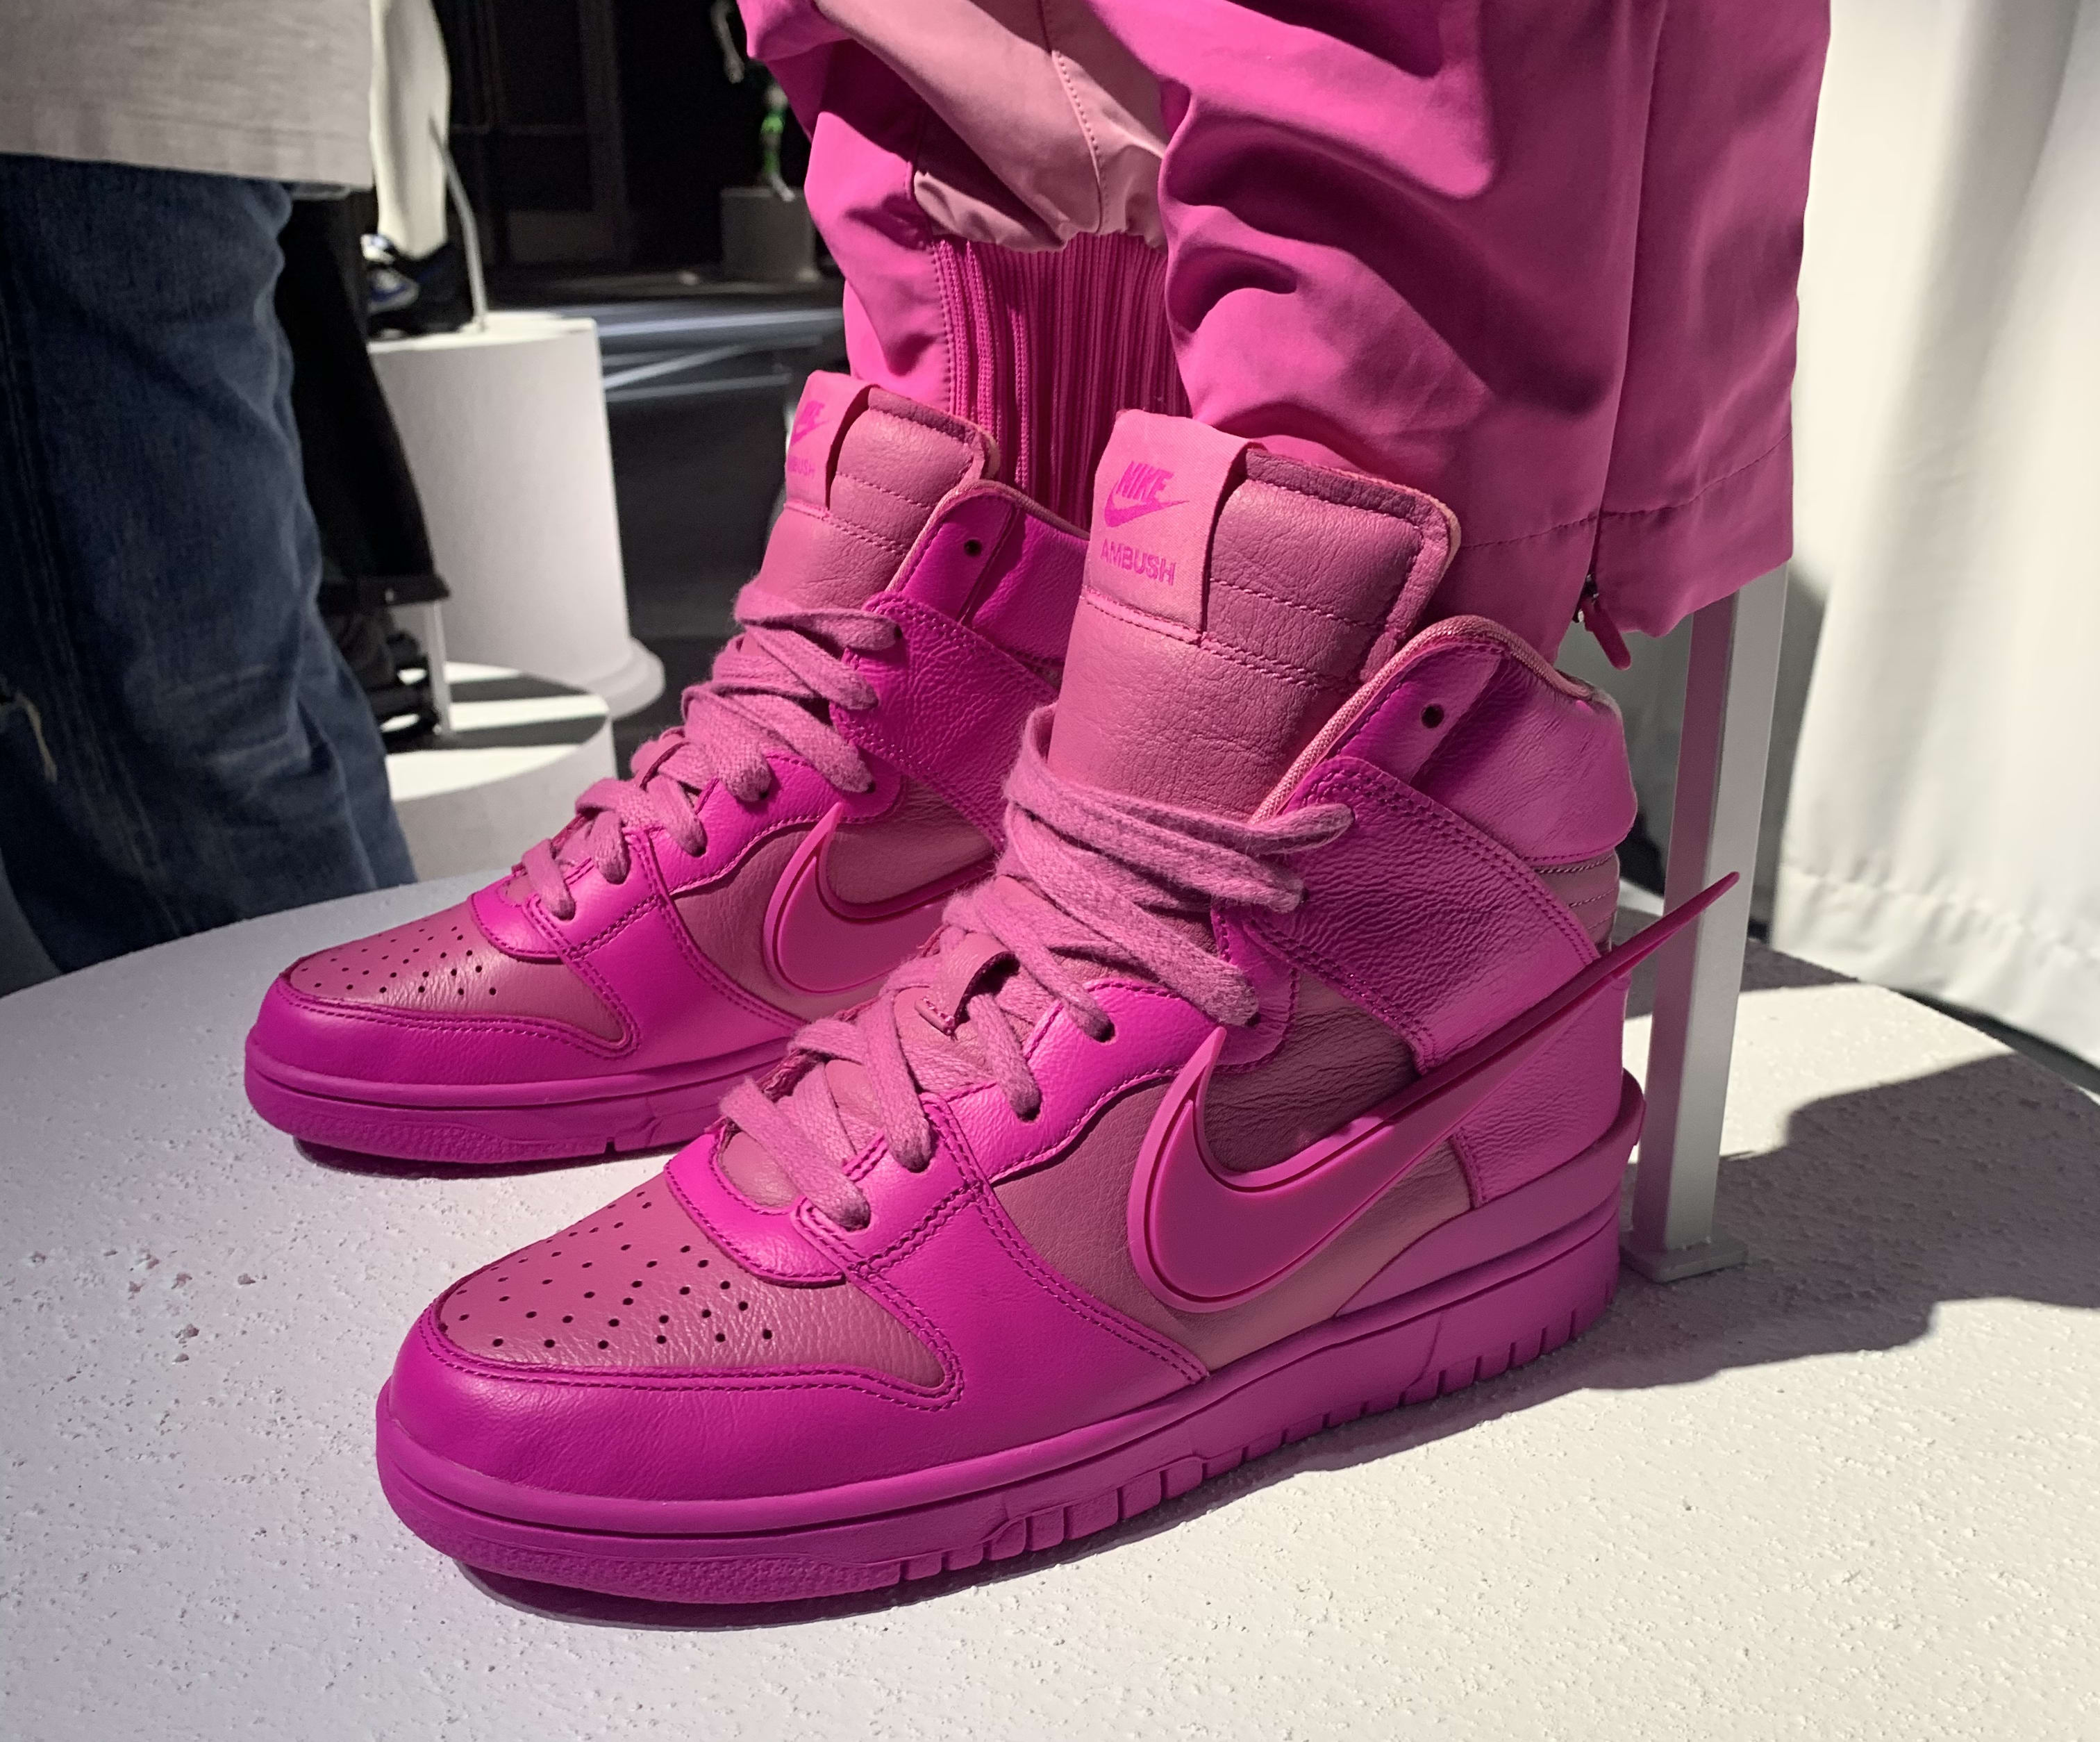 Ambush Nike Dunk High Pink Release Date